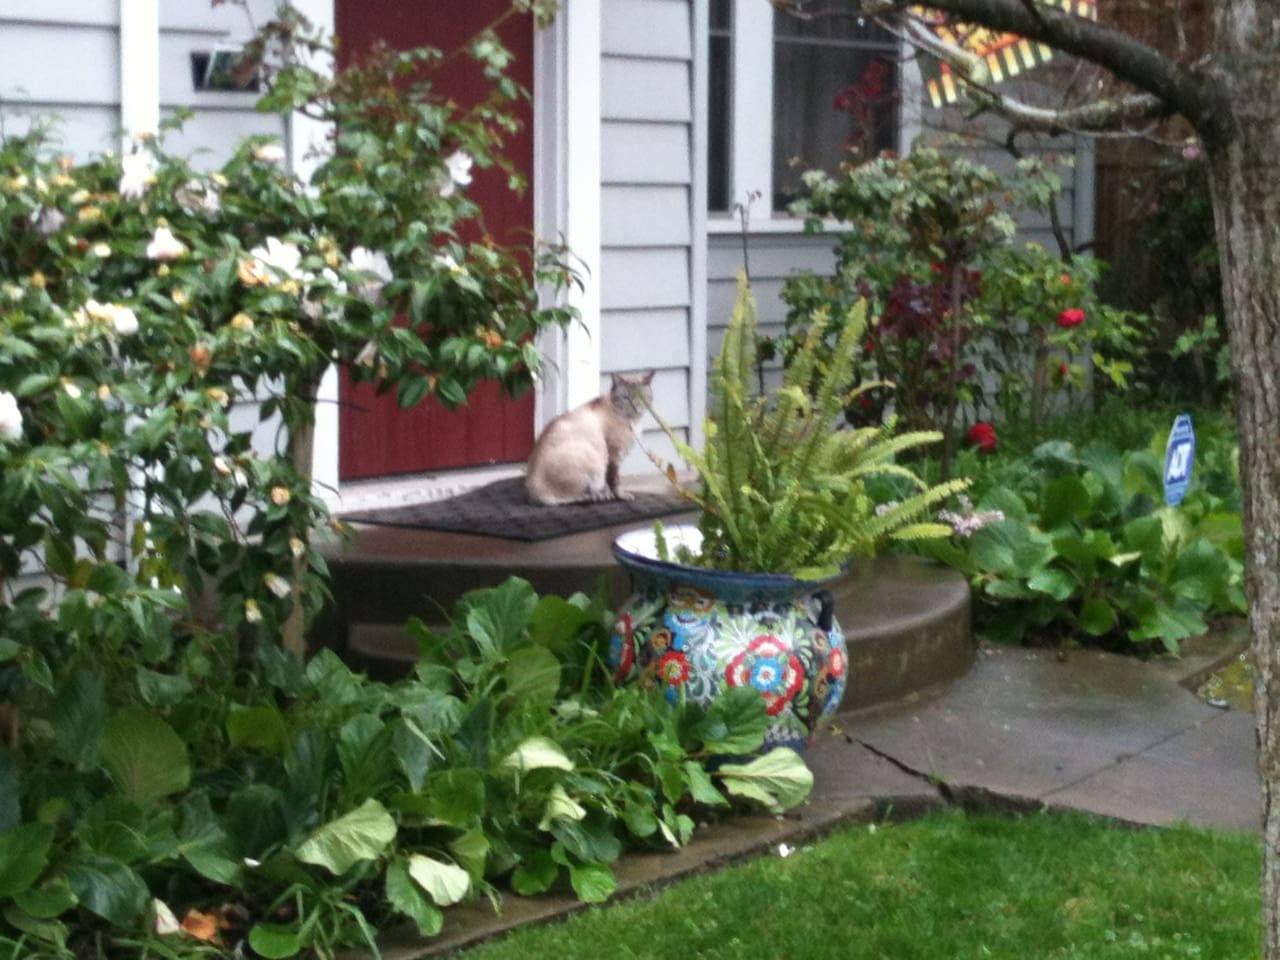 Welcome to our home. The cat on the stoop is a neighborhood cat, not ours.